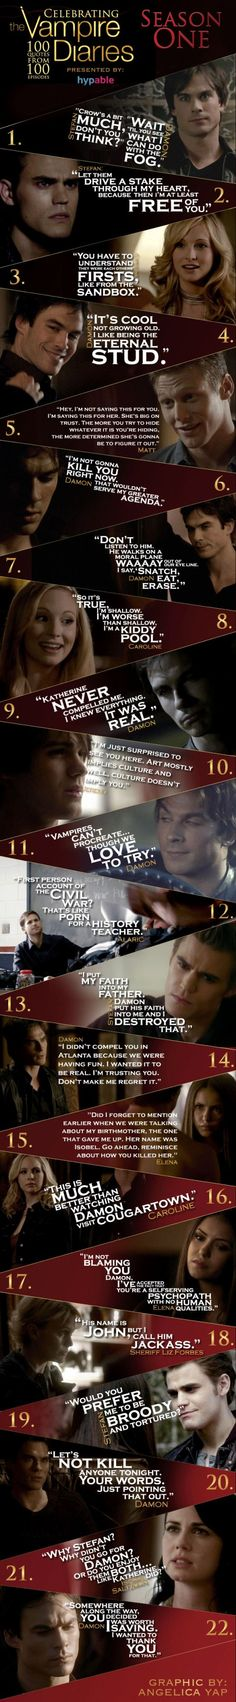 the-vampire-diaries-season-1-best-quotes-hypable.jpg